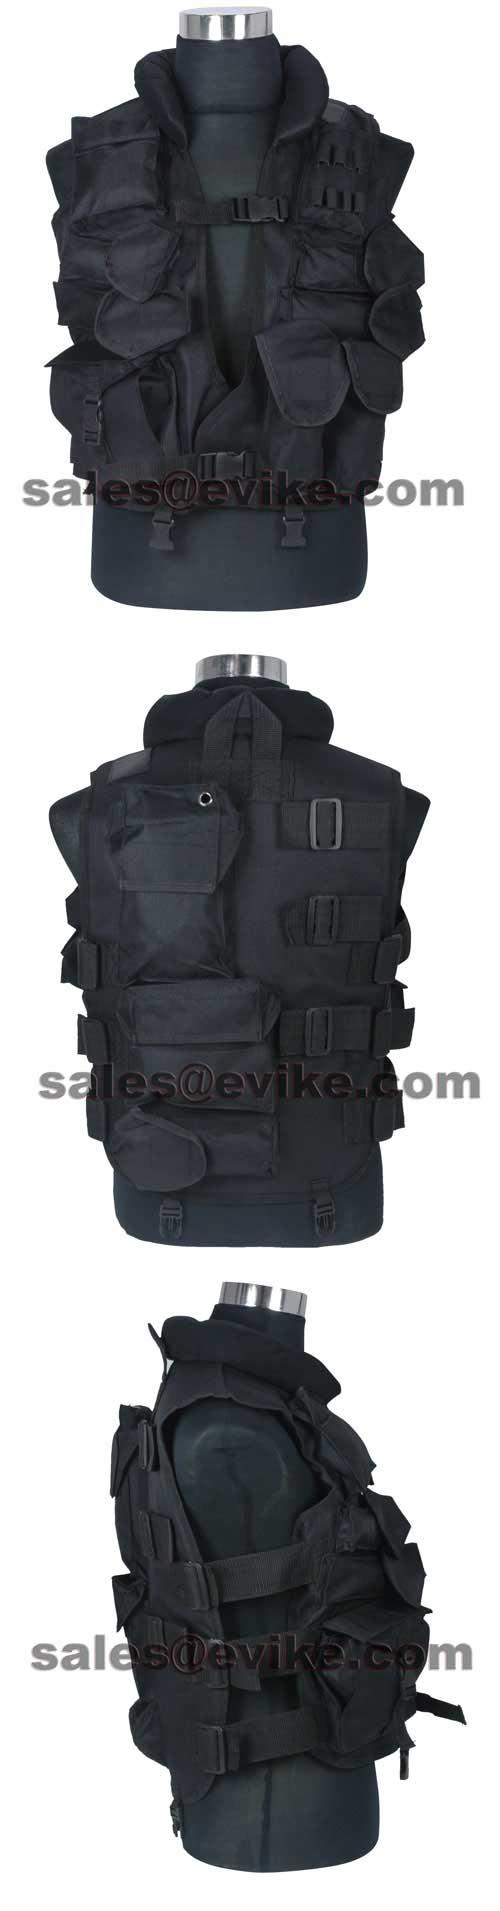 Fire Dragon SDU Special Level II Special Force Vest.(Black)